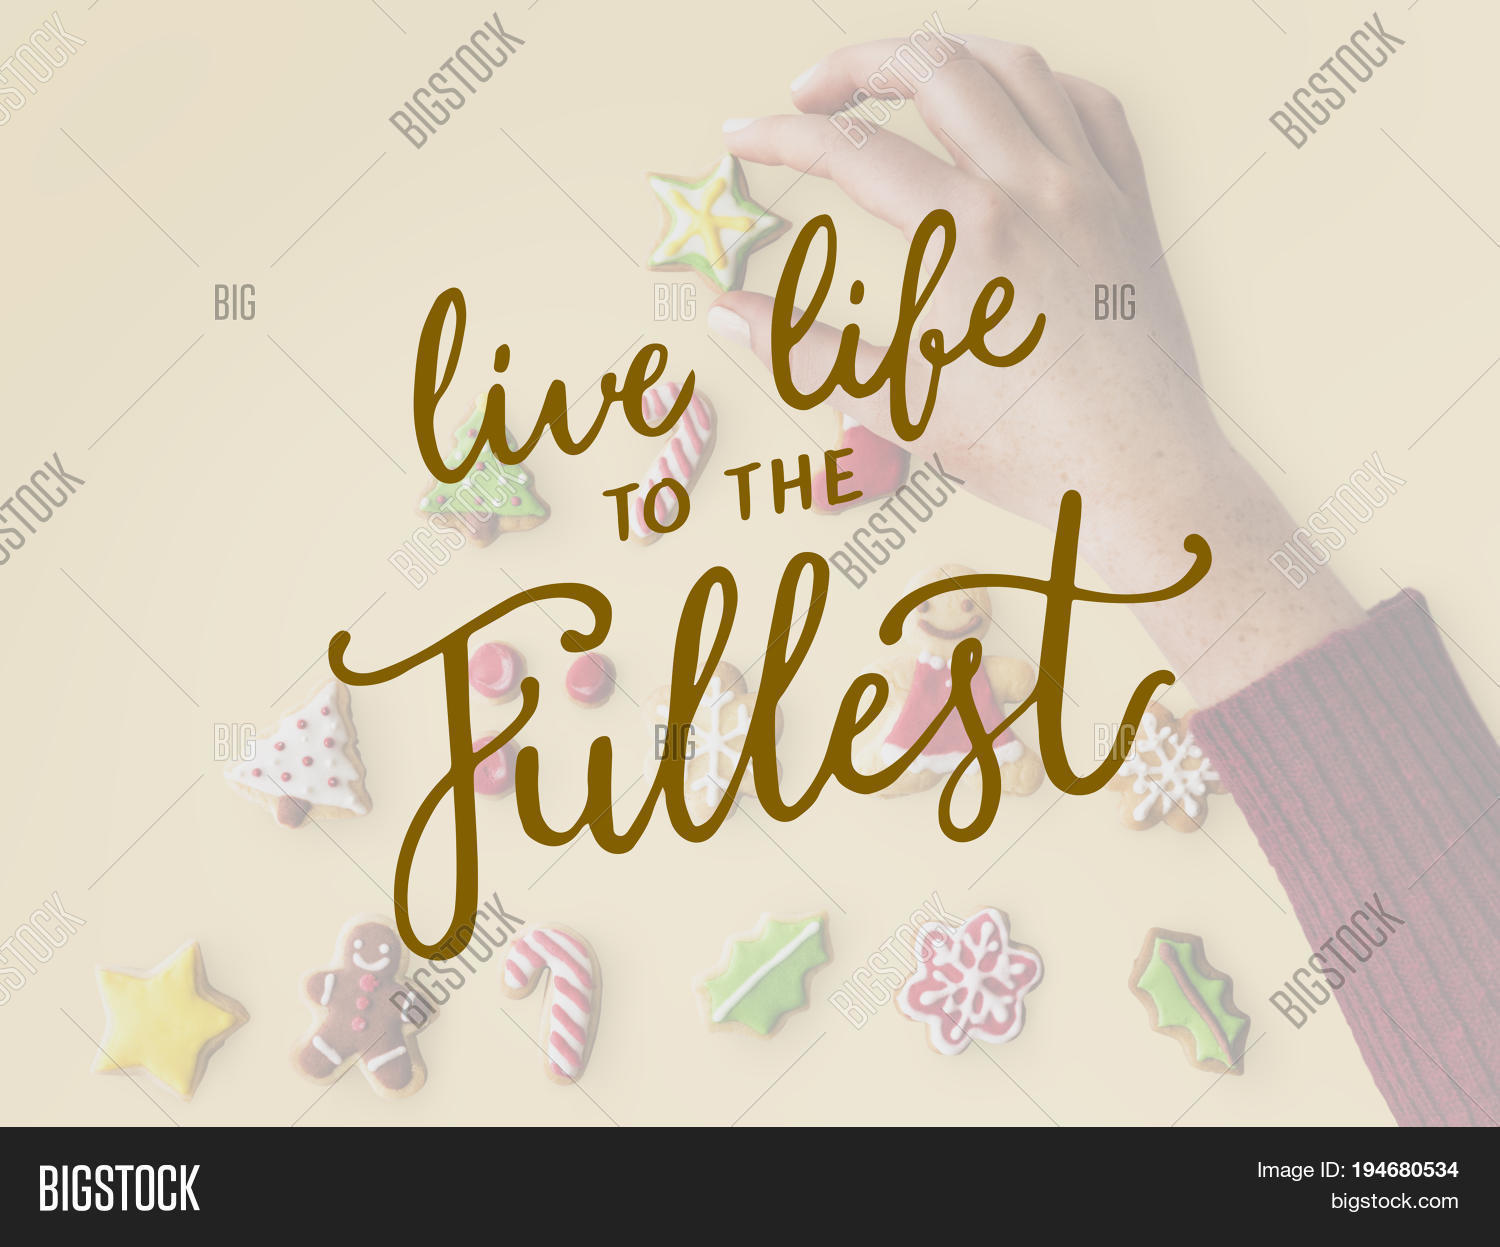 Live Life To The Fullest Quotes Live Life Fullest Quote Message Image & Photo  Bigstock